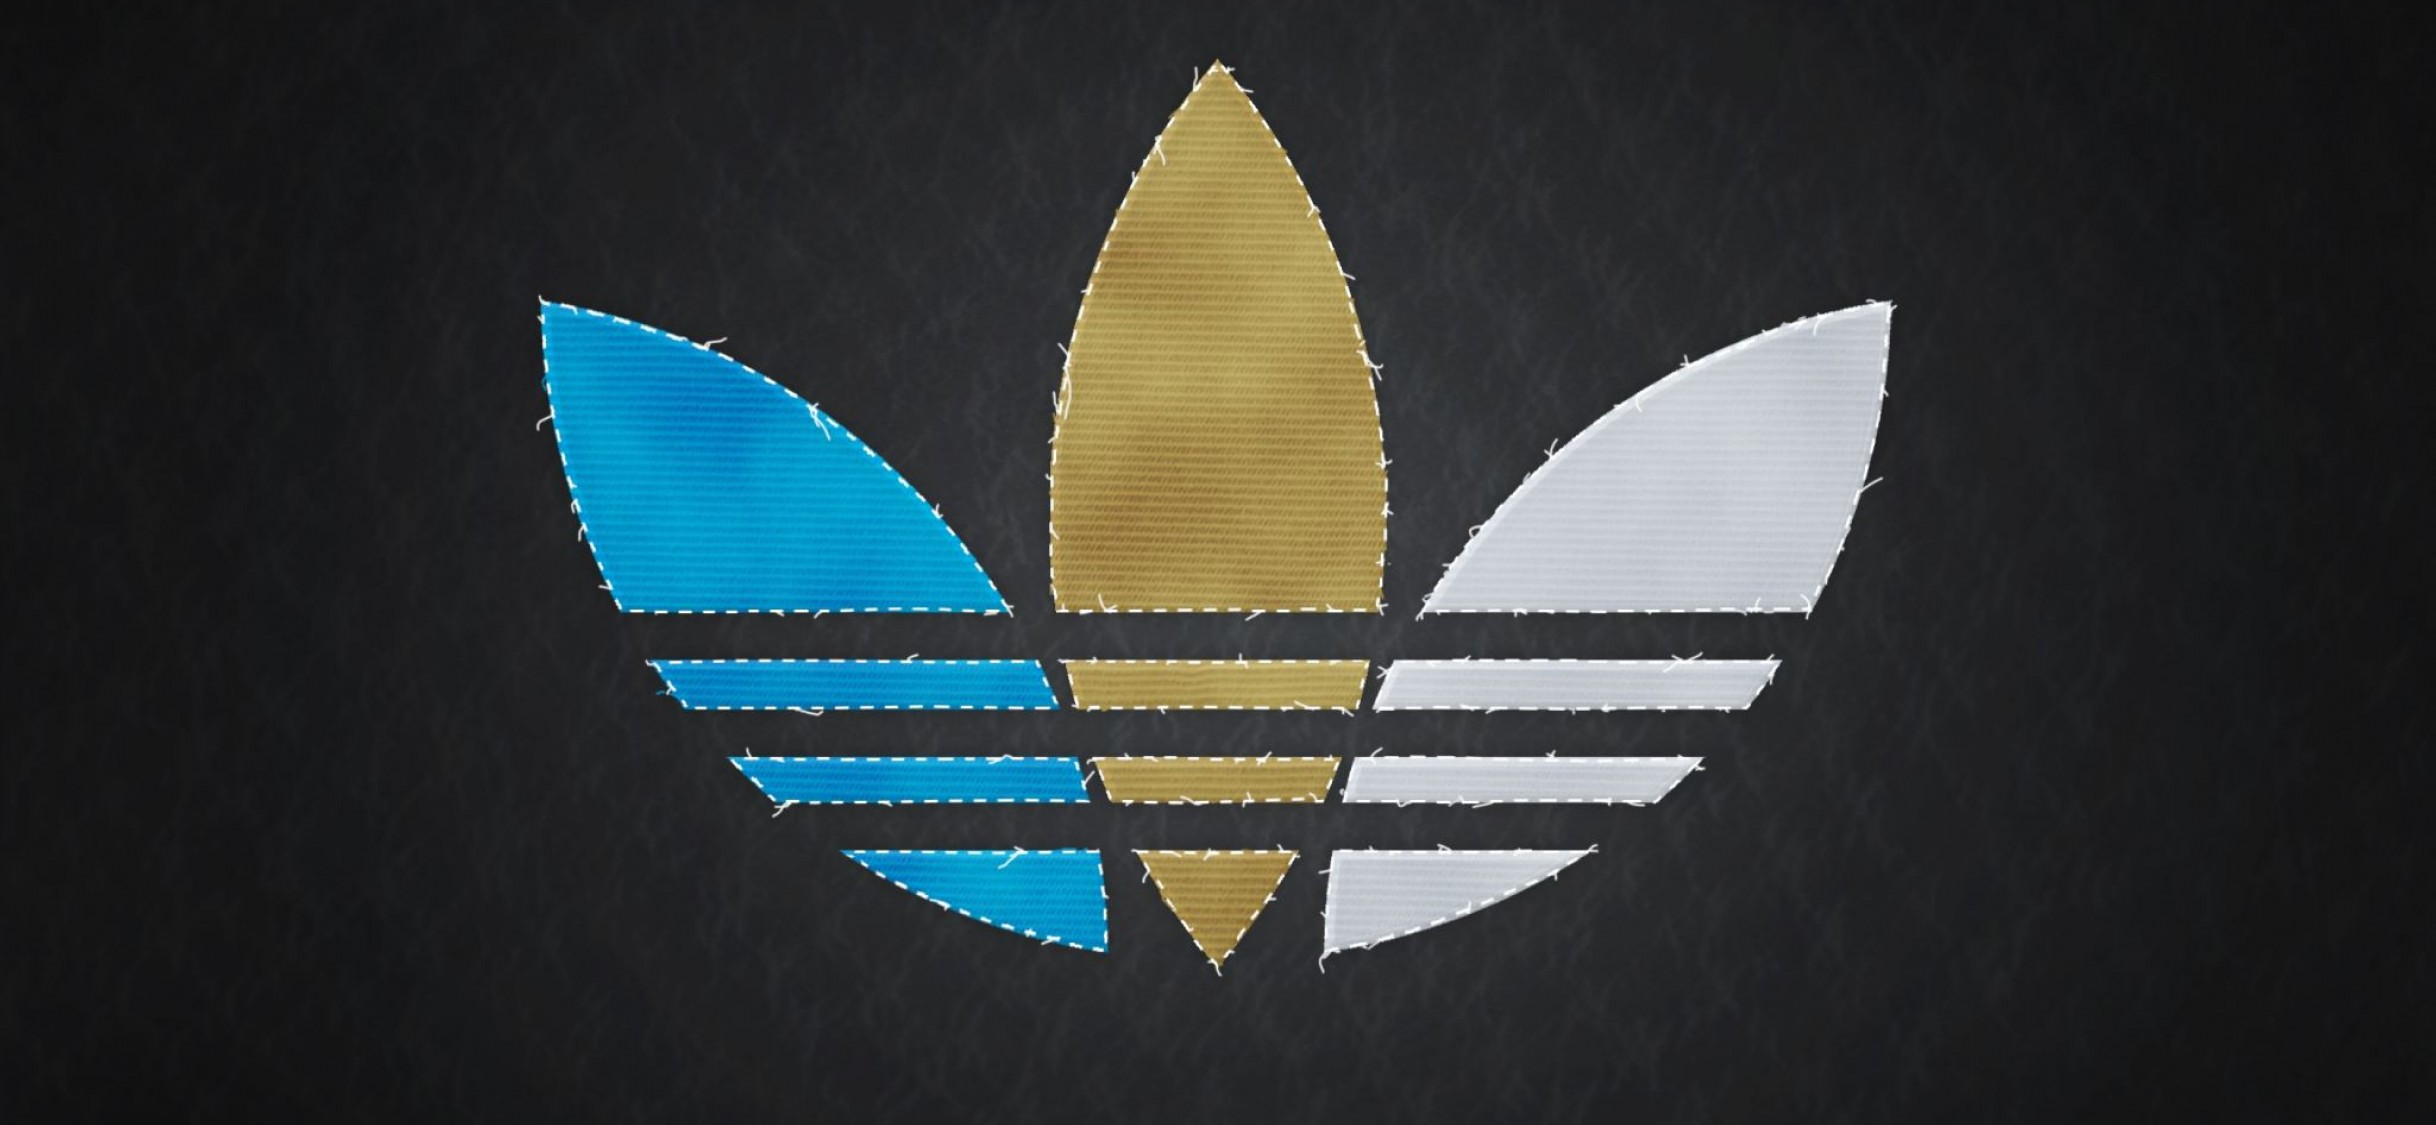 Download Adidas Logo Full Hd Background Wallpaper For